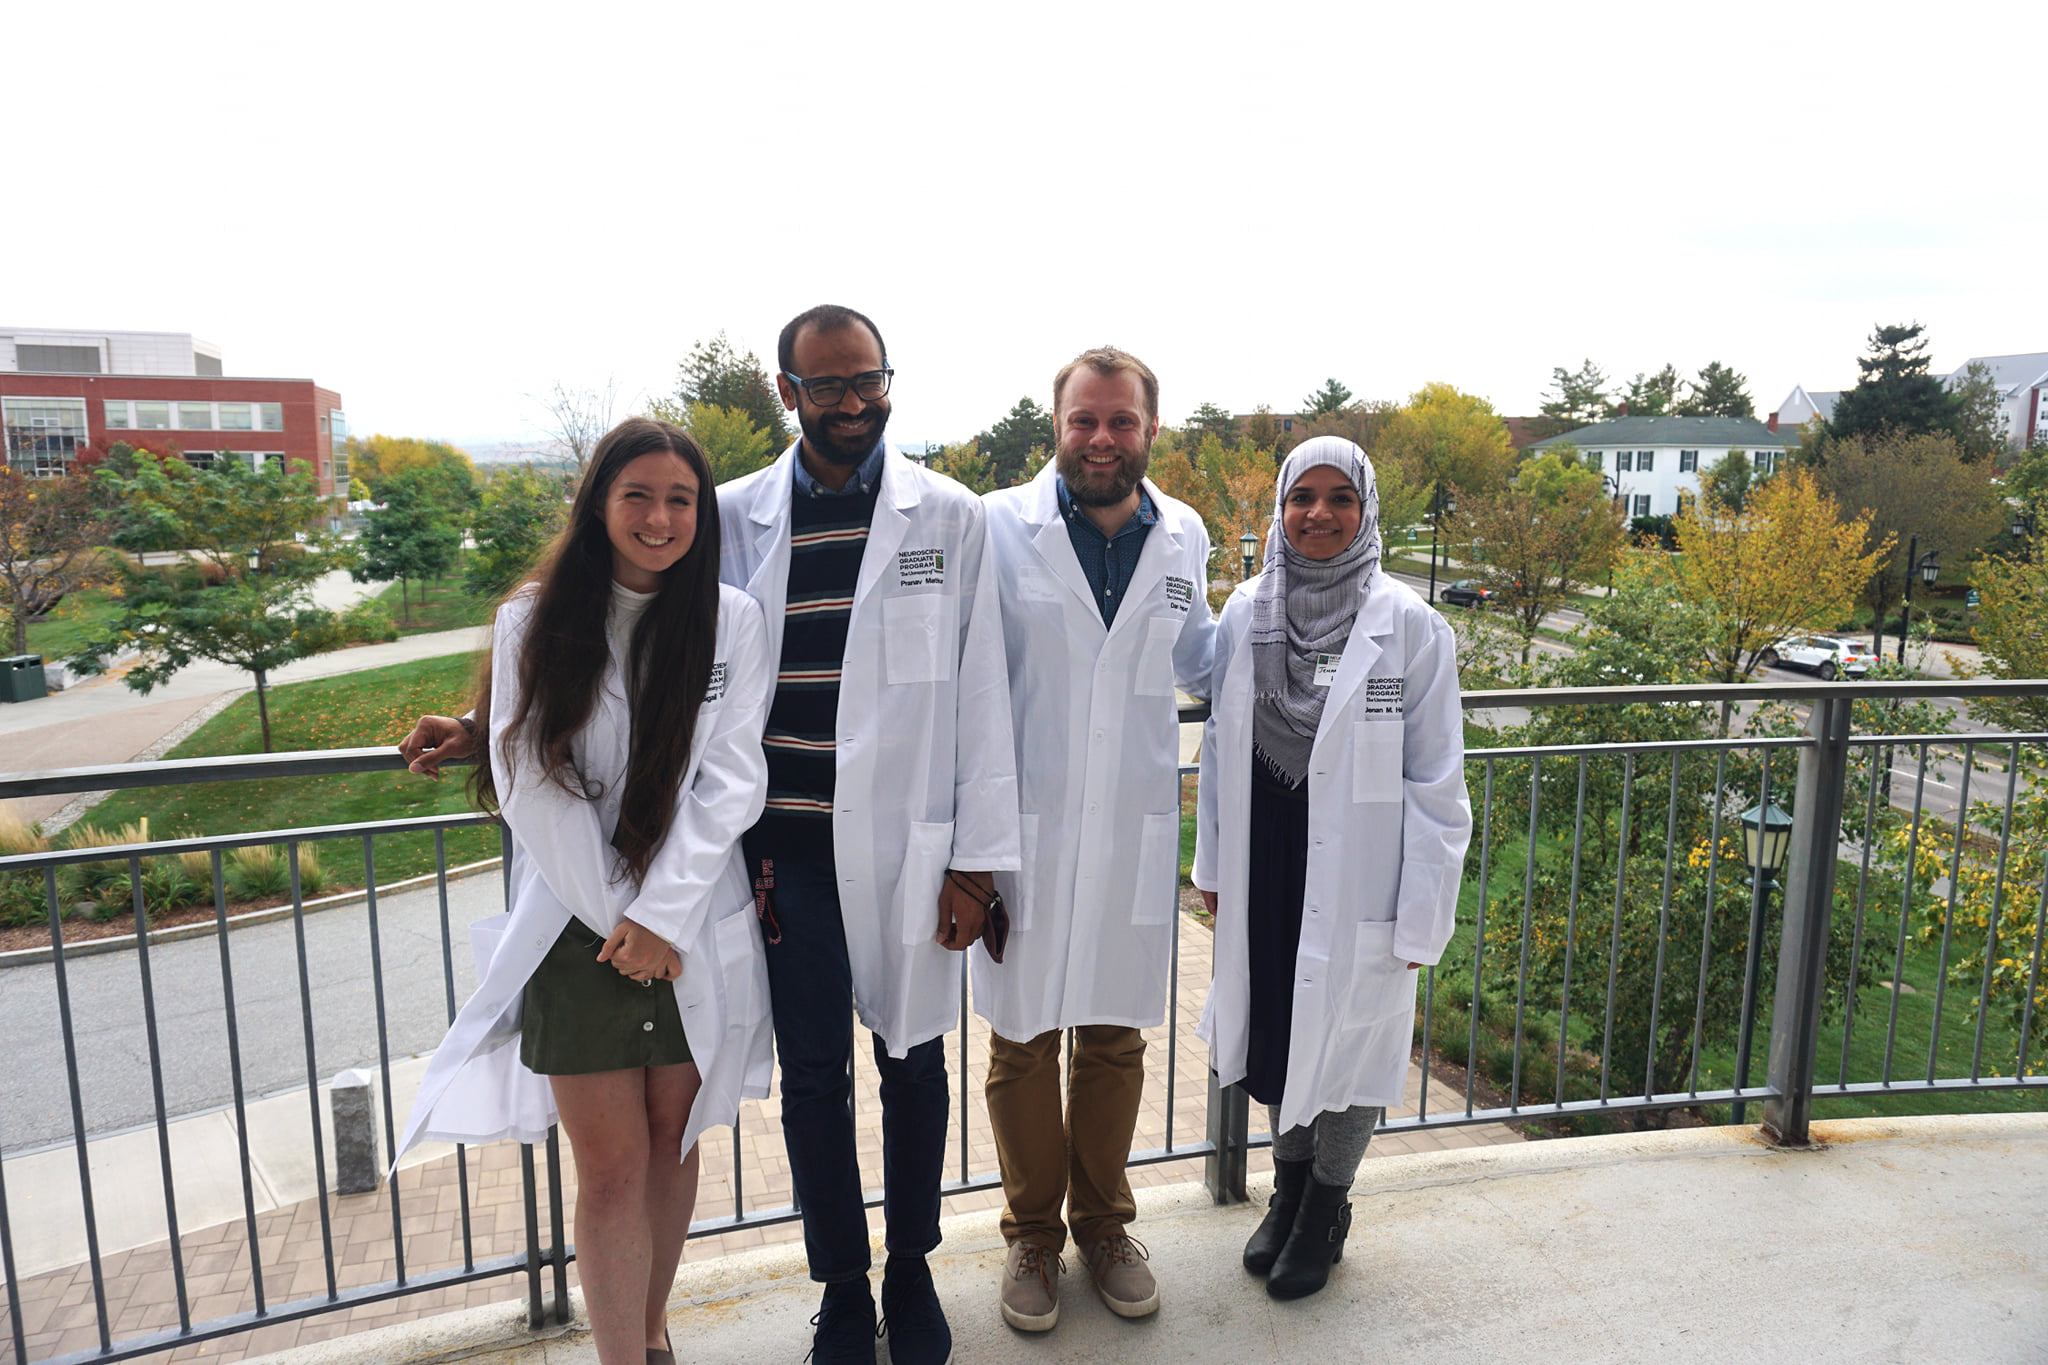 NGP students pose in their white coats